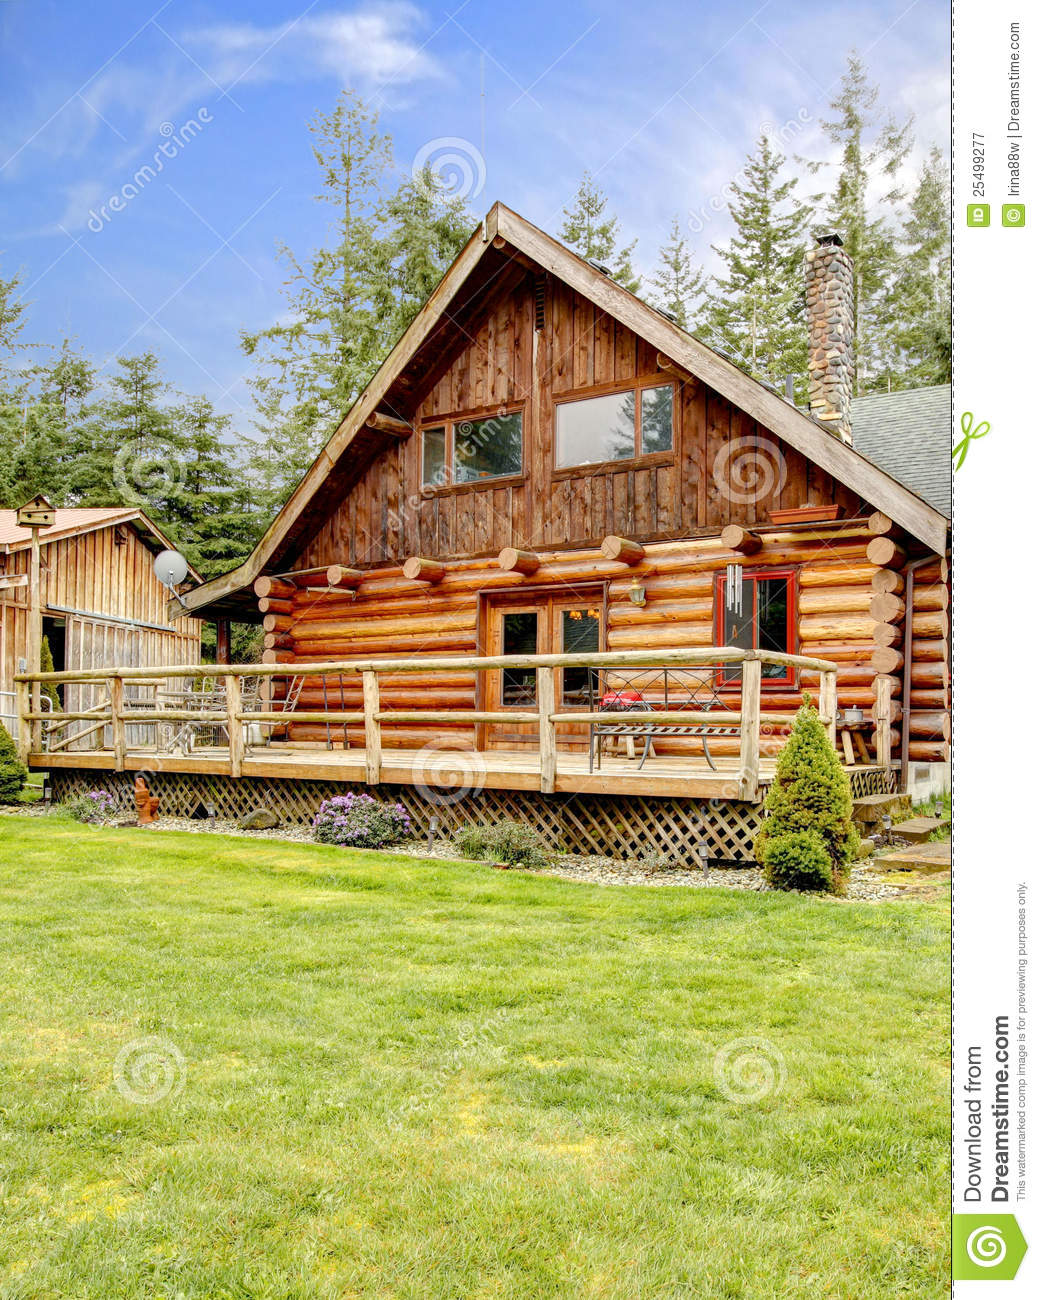 Rustic log small cabin deck exterior royalty free stock for Log home decks